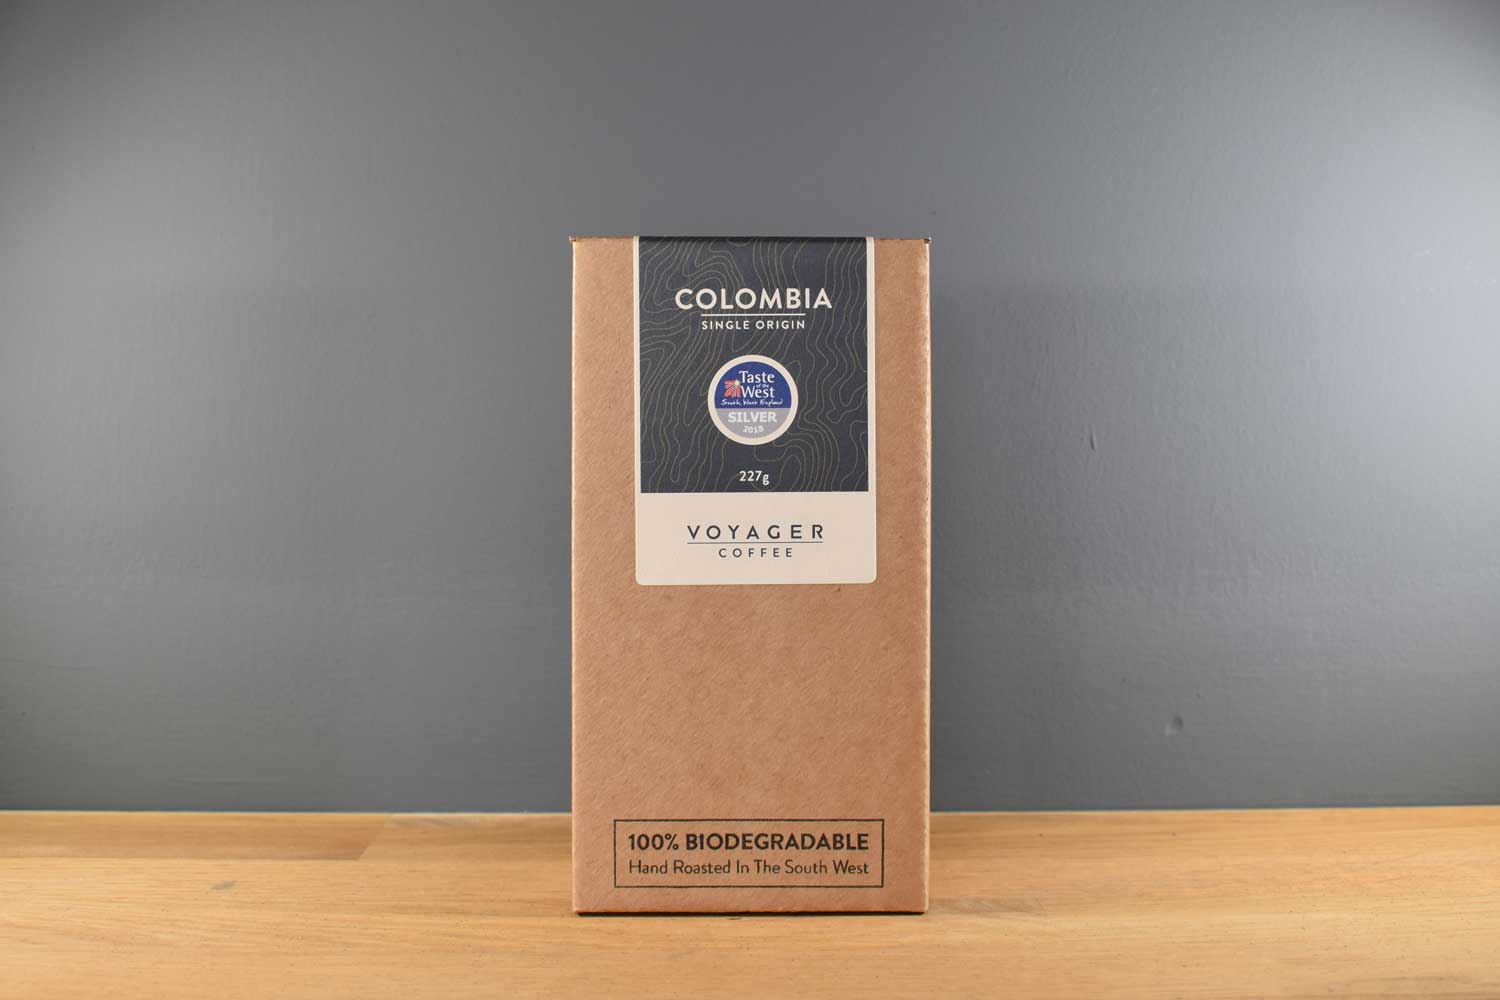 Voyager Coffee Colombia Narino Retail